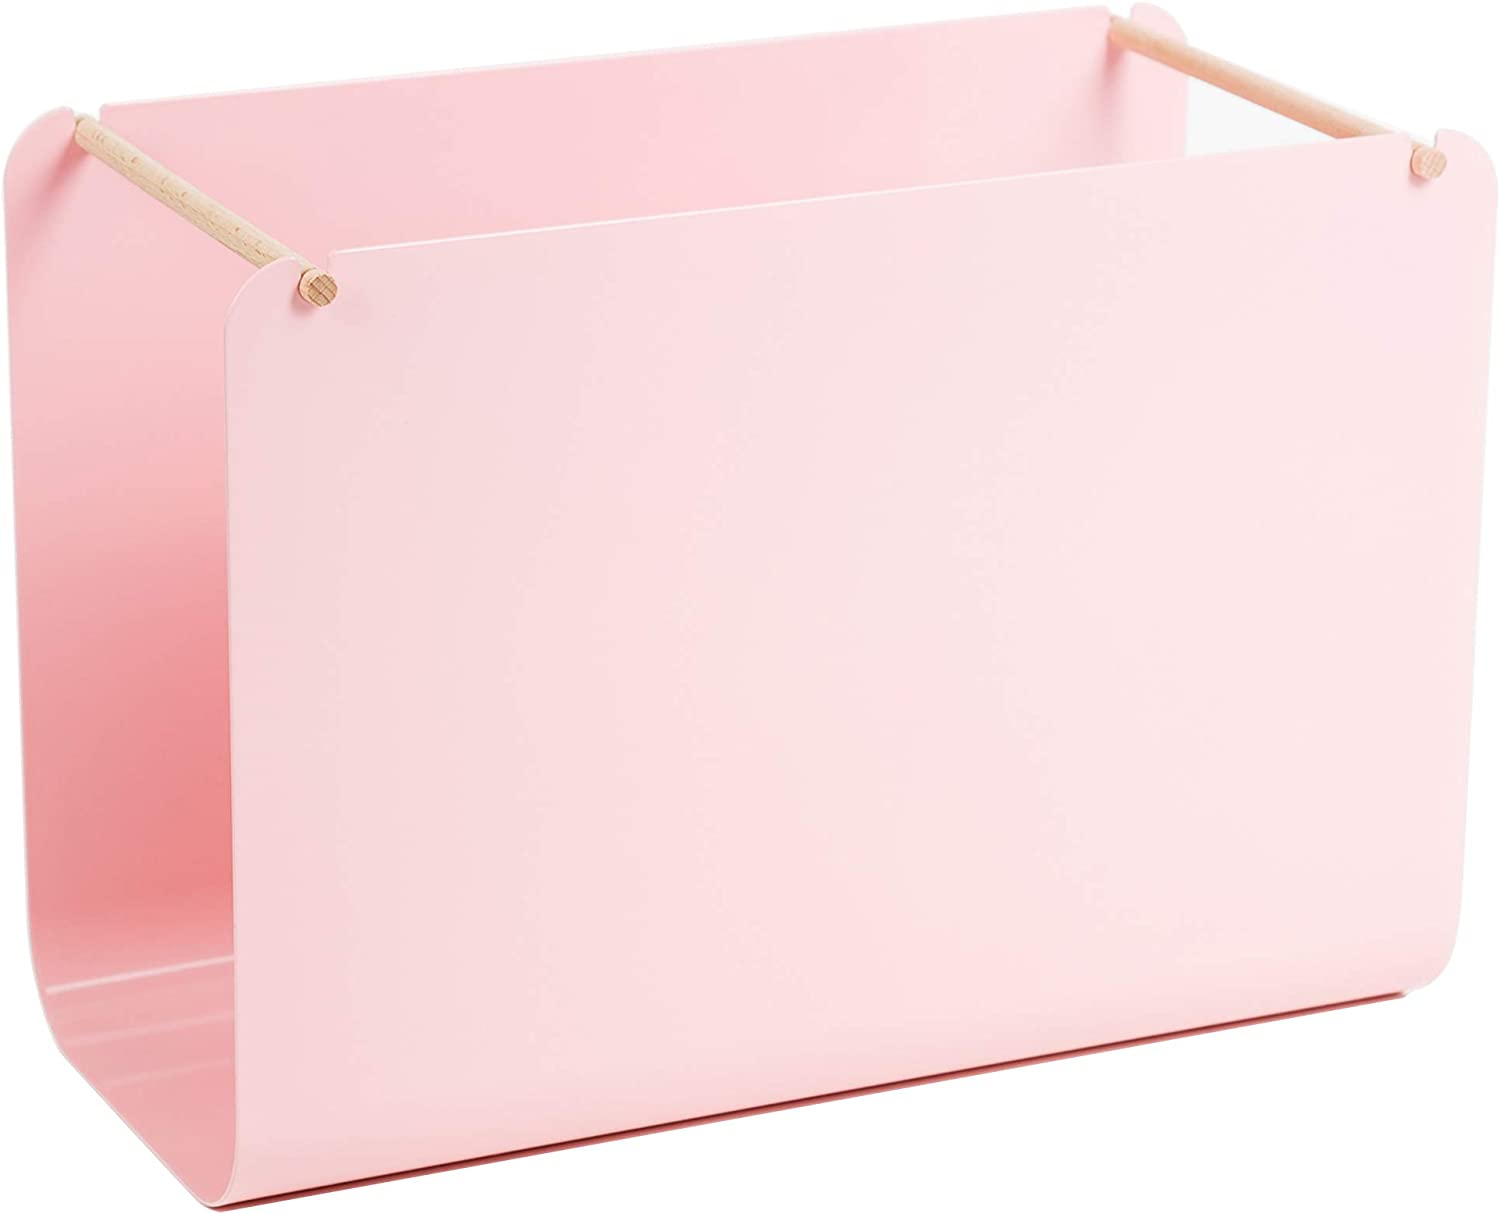 U Brands Metal Hanging File Organizer, Desktop Accessory, Arc Collection, Pink (3550A02-04)